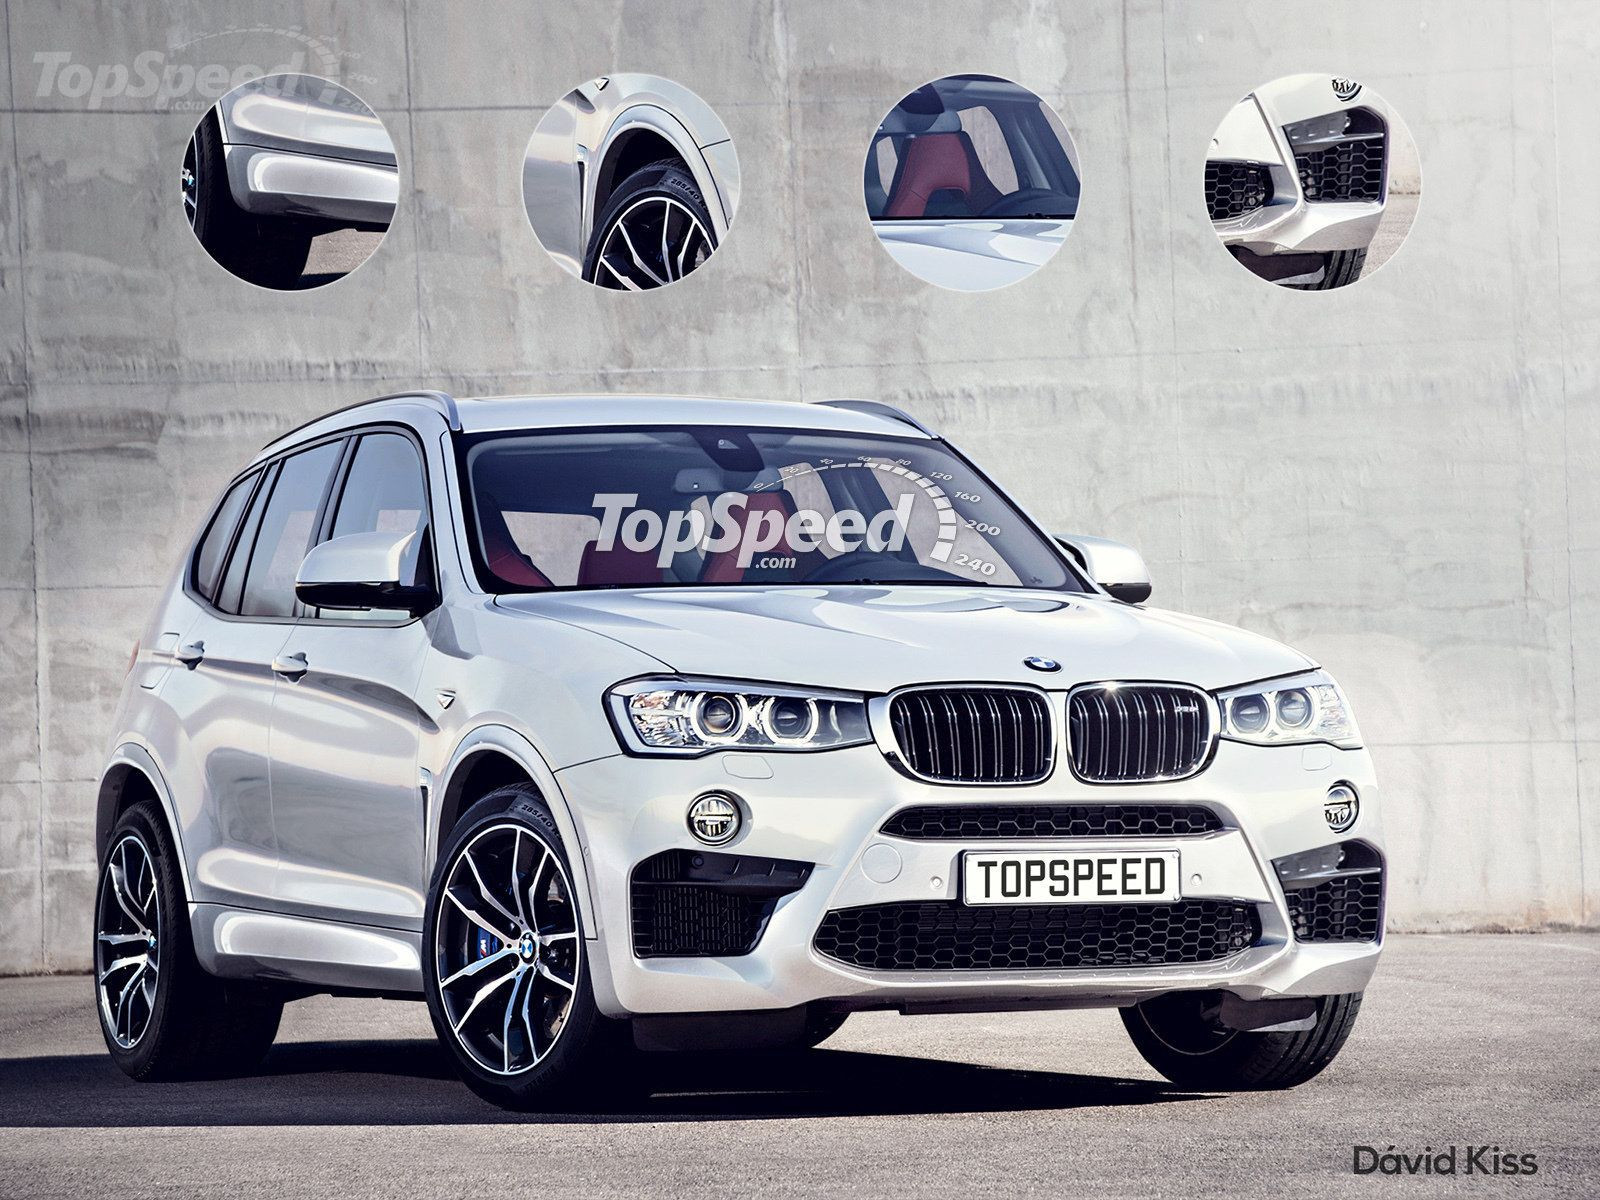 2017 Bmw X3 Xdrive28i Xdrive35i Xdrive28d Msrp Sdrive28i Dimensions For Interior Sel Review Accessories Alpine White Australia